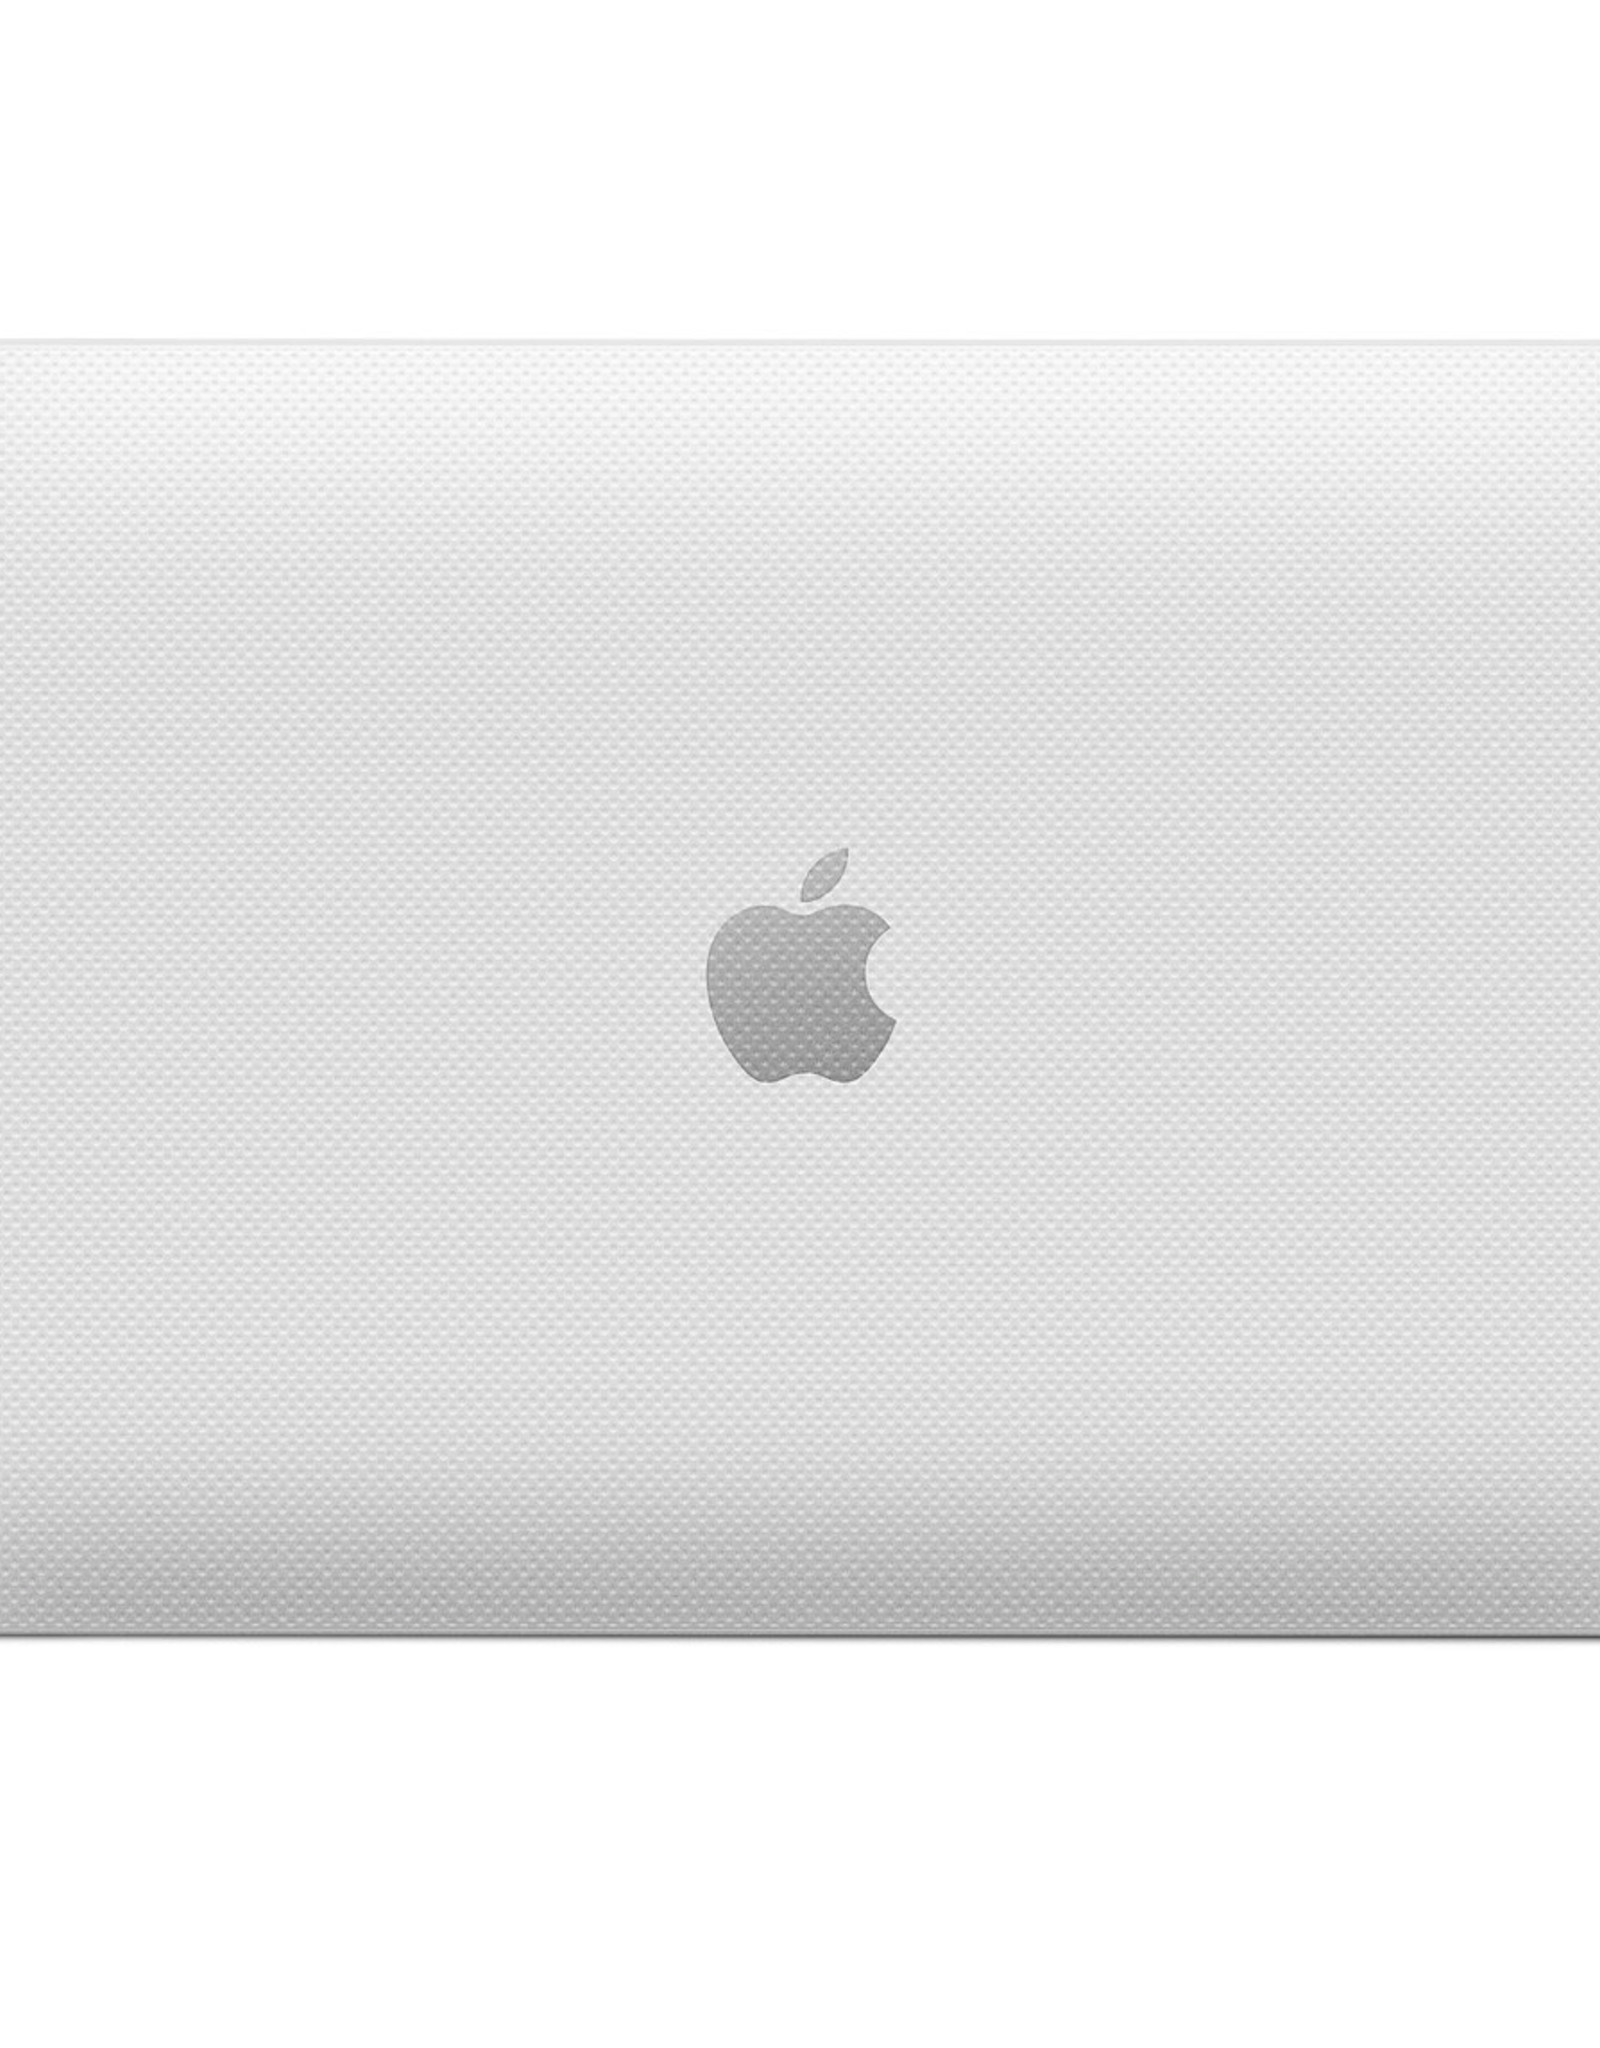 Incase | Hardshell Case Clear for MacBook Air 13 inch Retina Display 120-2011